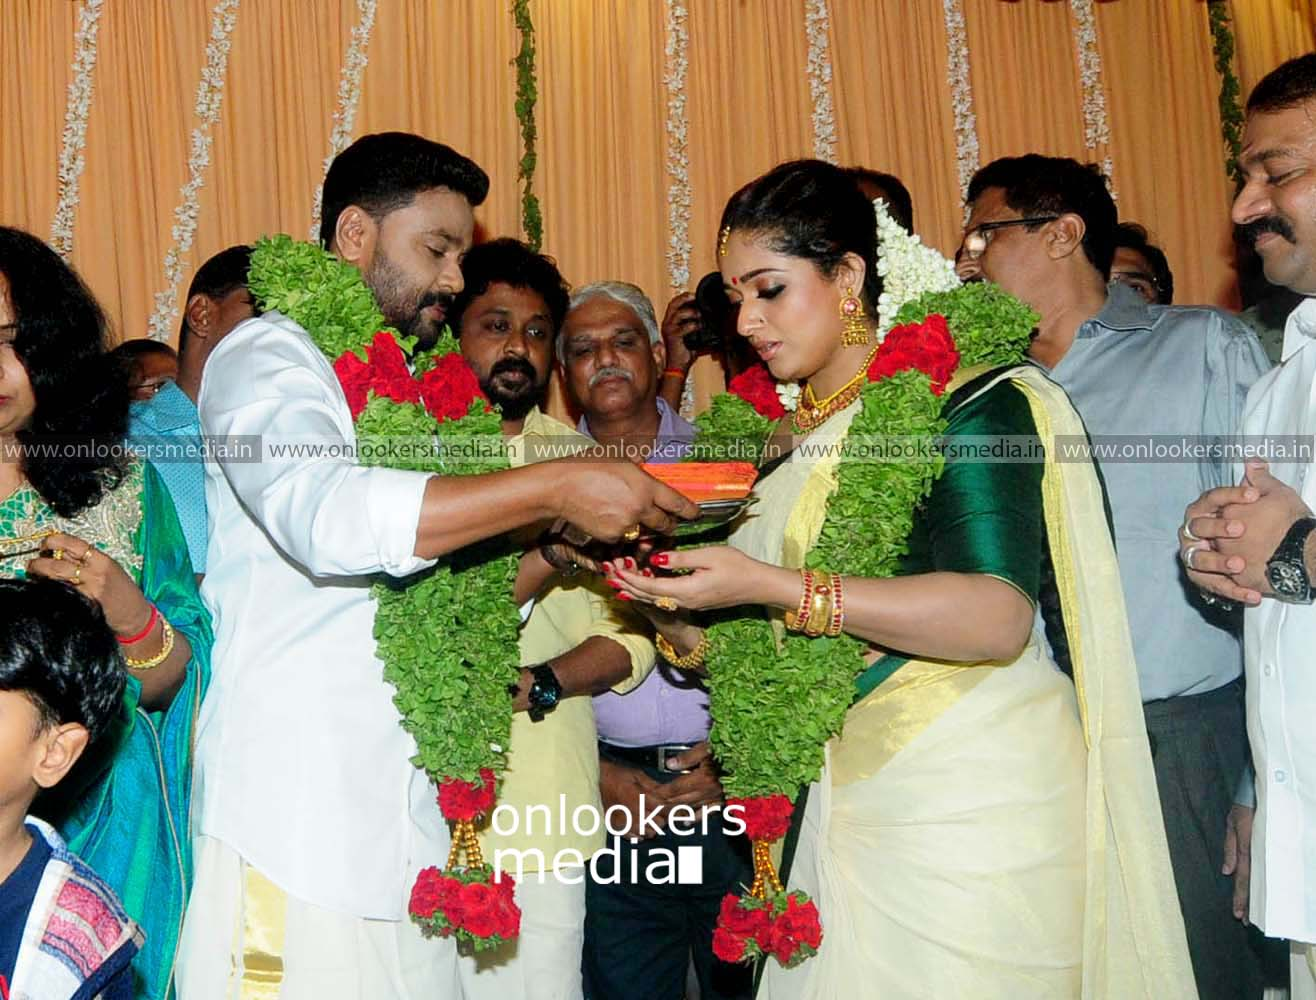 http://onlookersmedia.in/wp-content/uploads/2016/11/Dileep-Kavya-Madhavan-Wedding-Stills-Photos-23.jpg